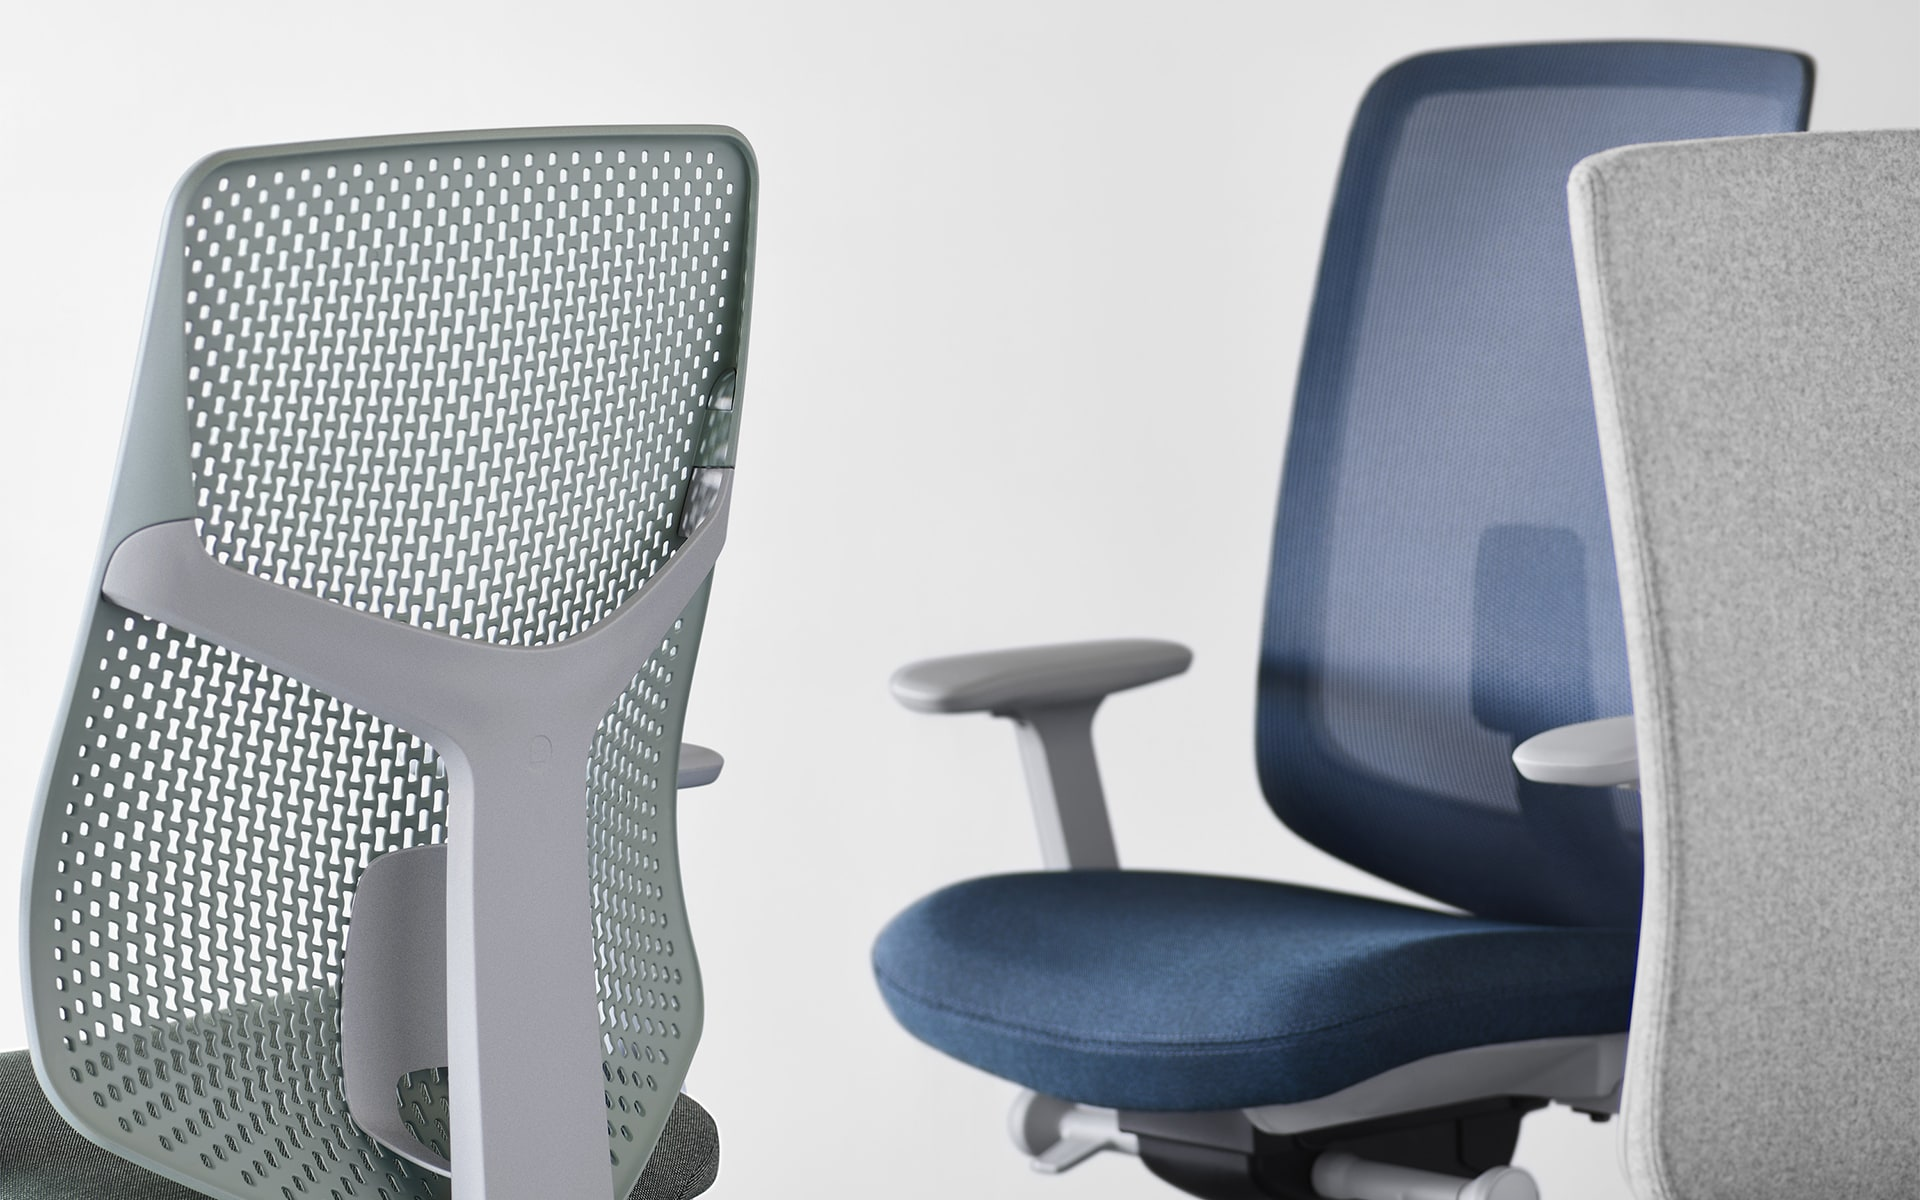 Close-ups of three chairs of the Hermann Miller Verus office chair family by ITO Design - one with the new perforated plastic backrest and two with other backrests